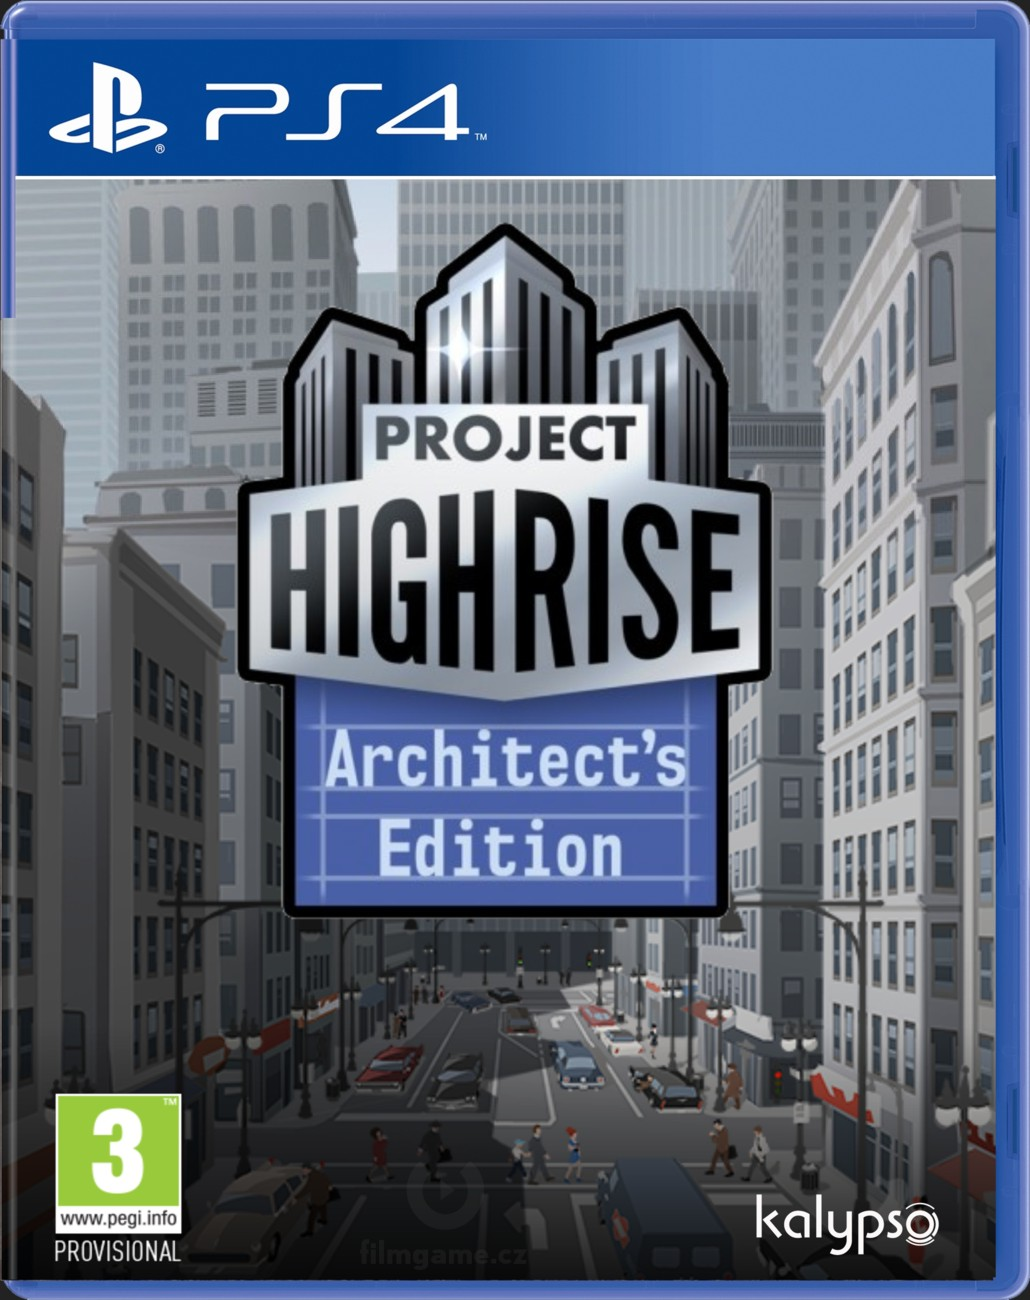 Project Highrise: Architect's Editio - PS4